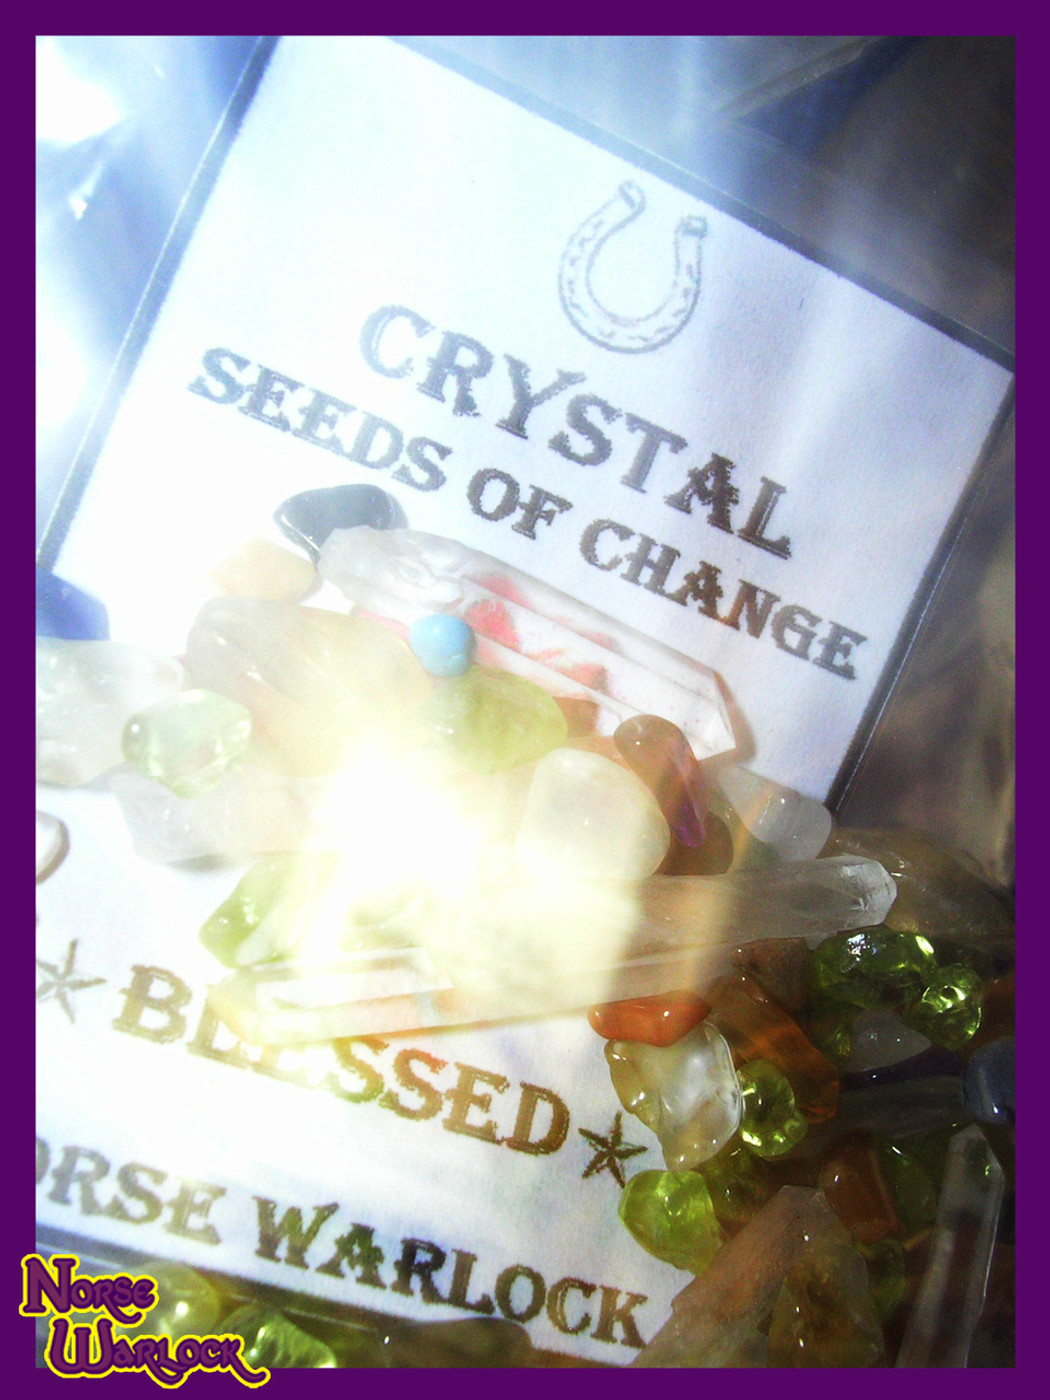 Enchanted Crystal Seeds of Change! Metaphysical Wishing Gemstones!